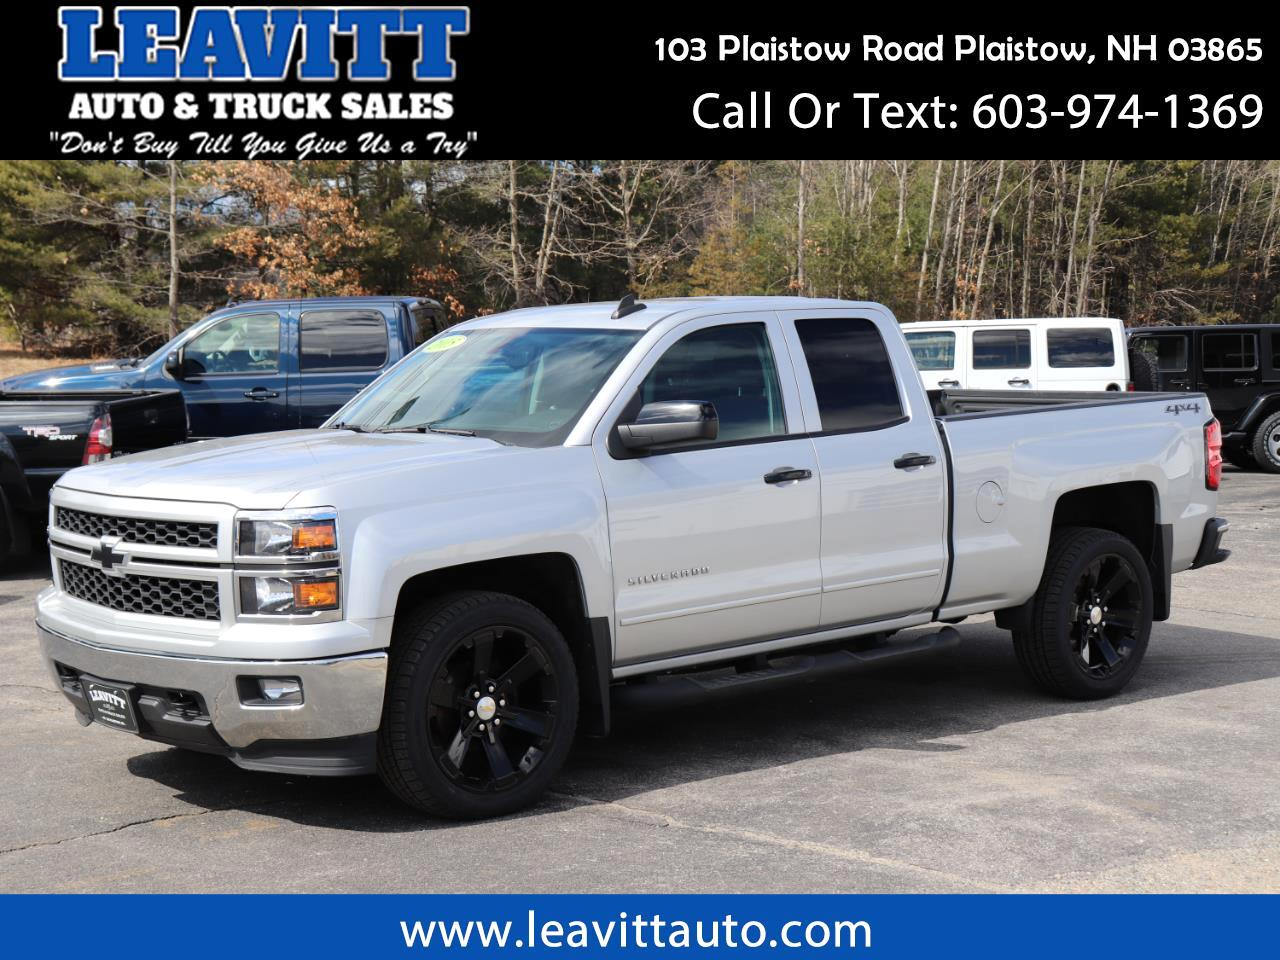 "2015 Chevrolet Silverado 1500 LT DOUBLE CAB 62K MILES 22"" WHEELS!!"